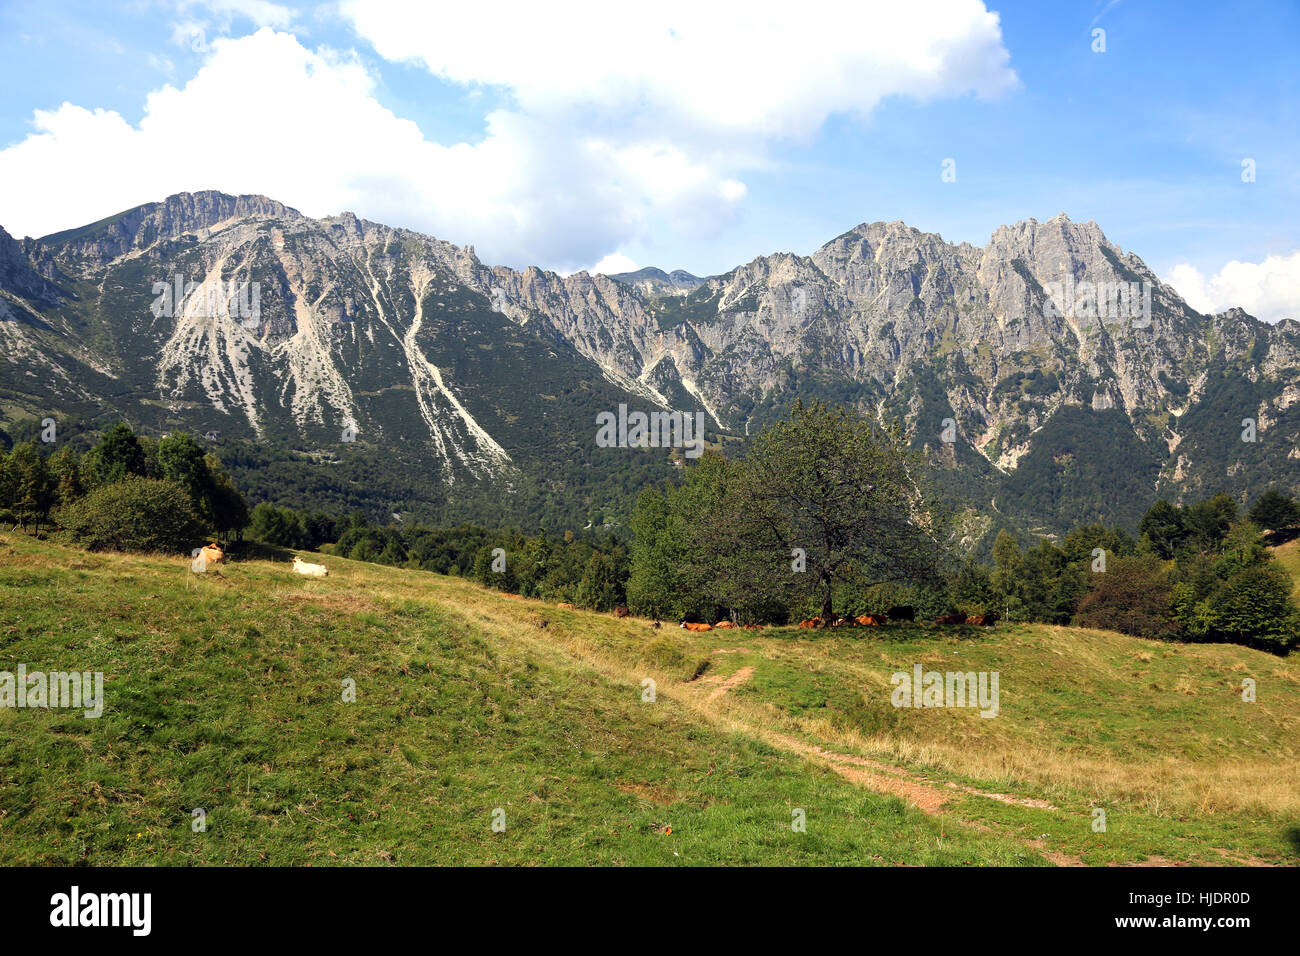 landscape of italian mountains called Venetian Prealps in the province of Vicenza in Italy - Stock Image